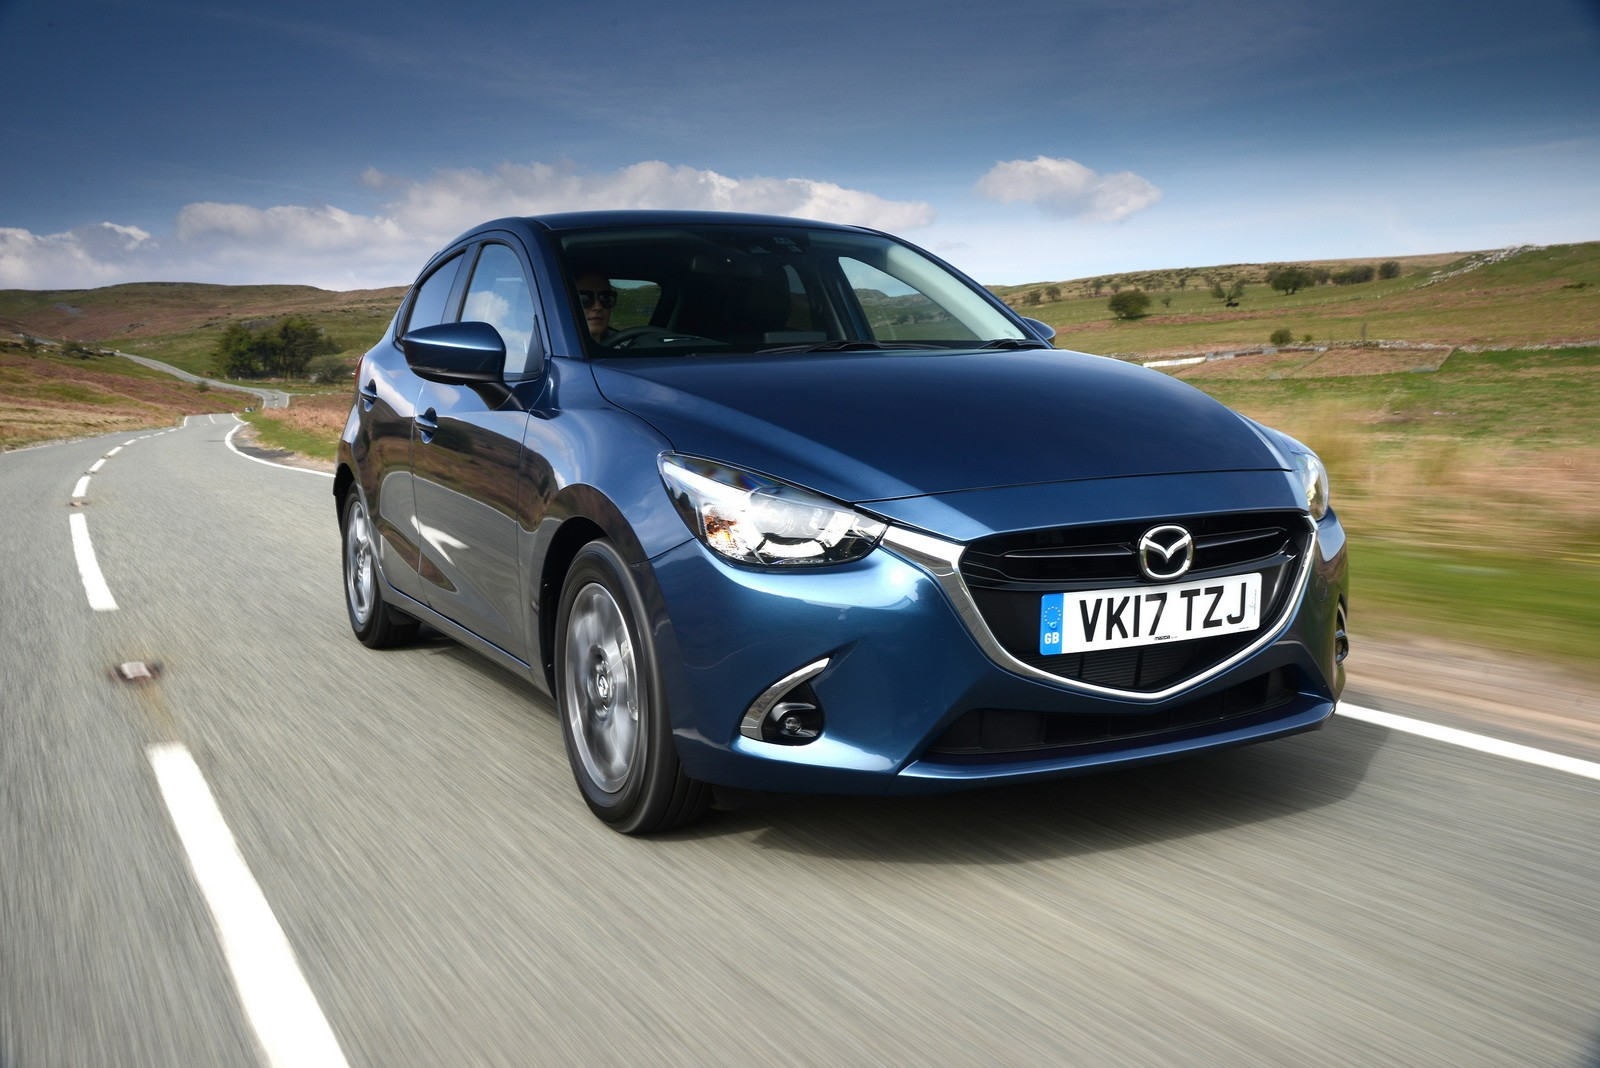 limited edition mazda2 model joins updated lineup in the uk autoevolution. Black Bedroom Furniture Sets. Home Design Ideas